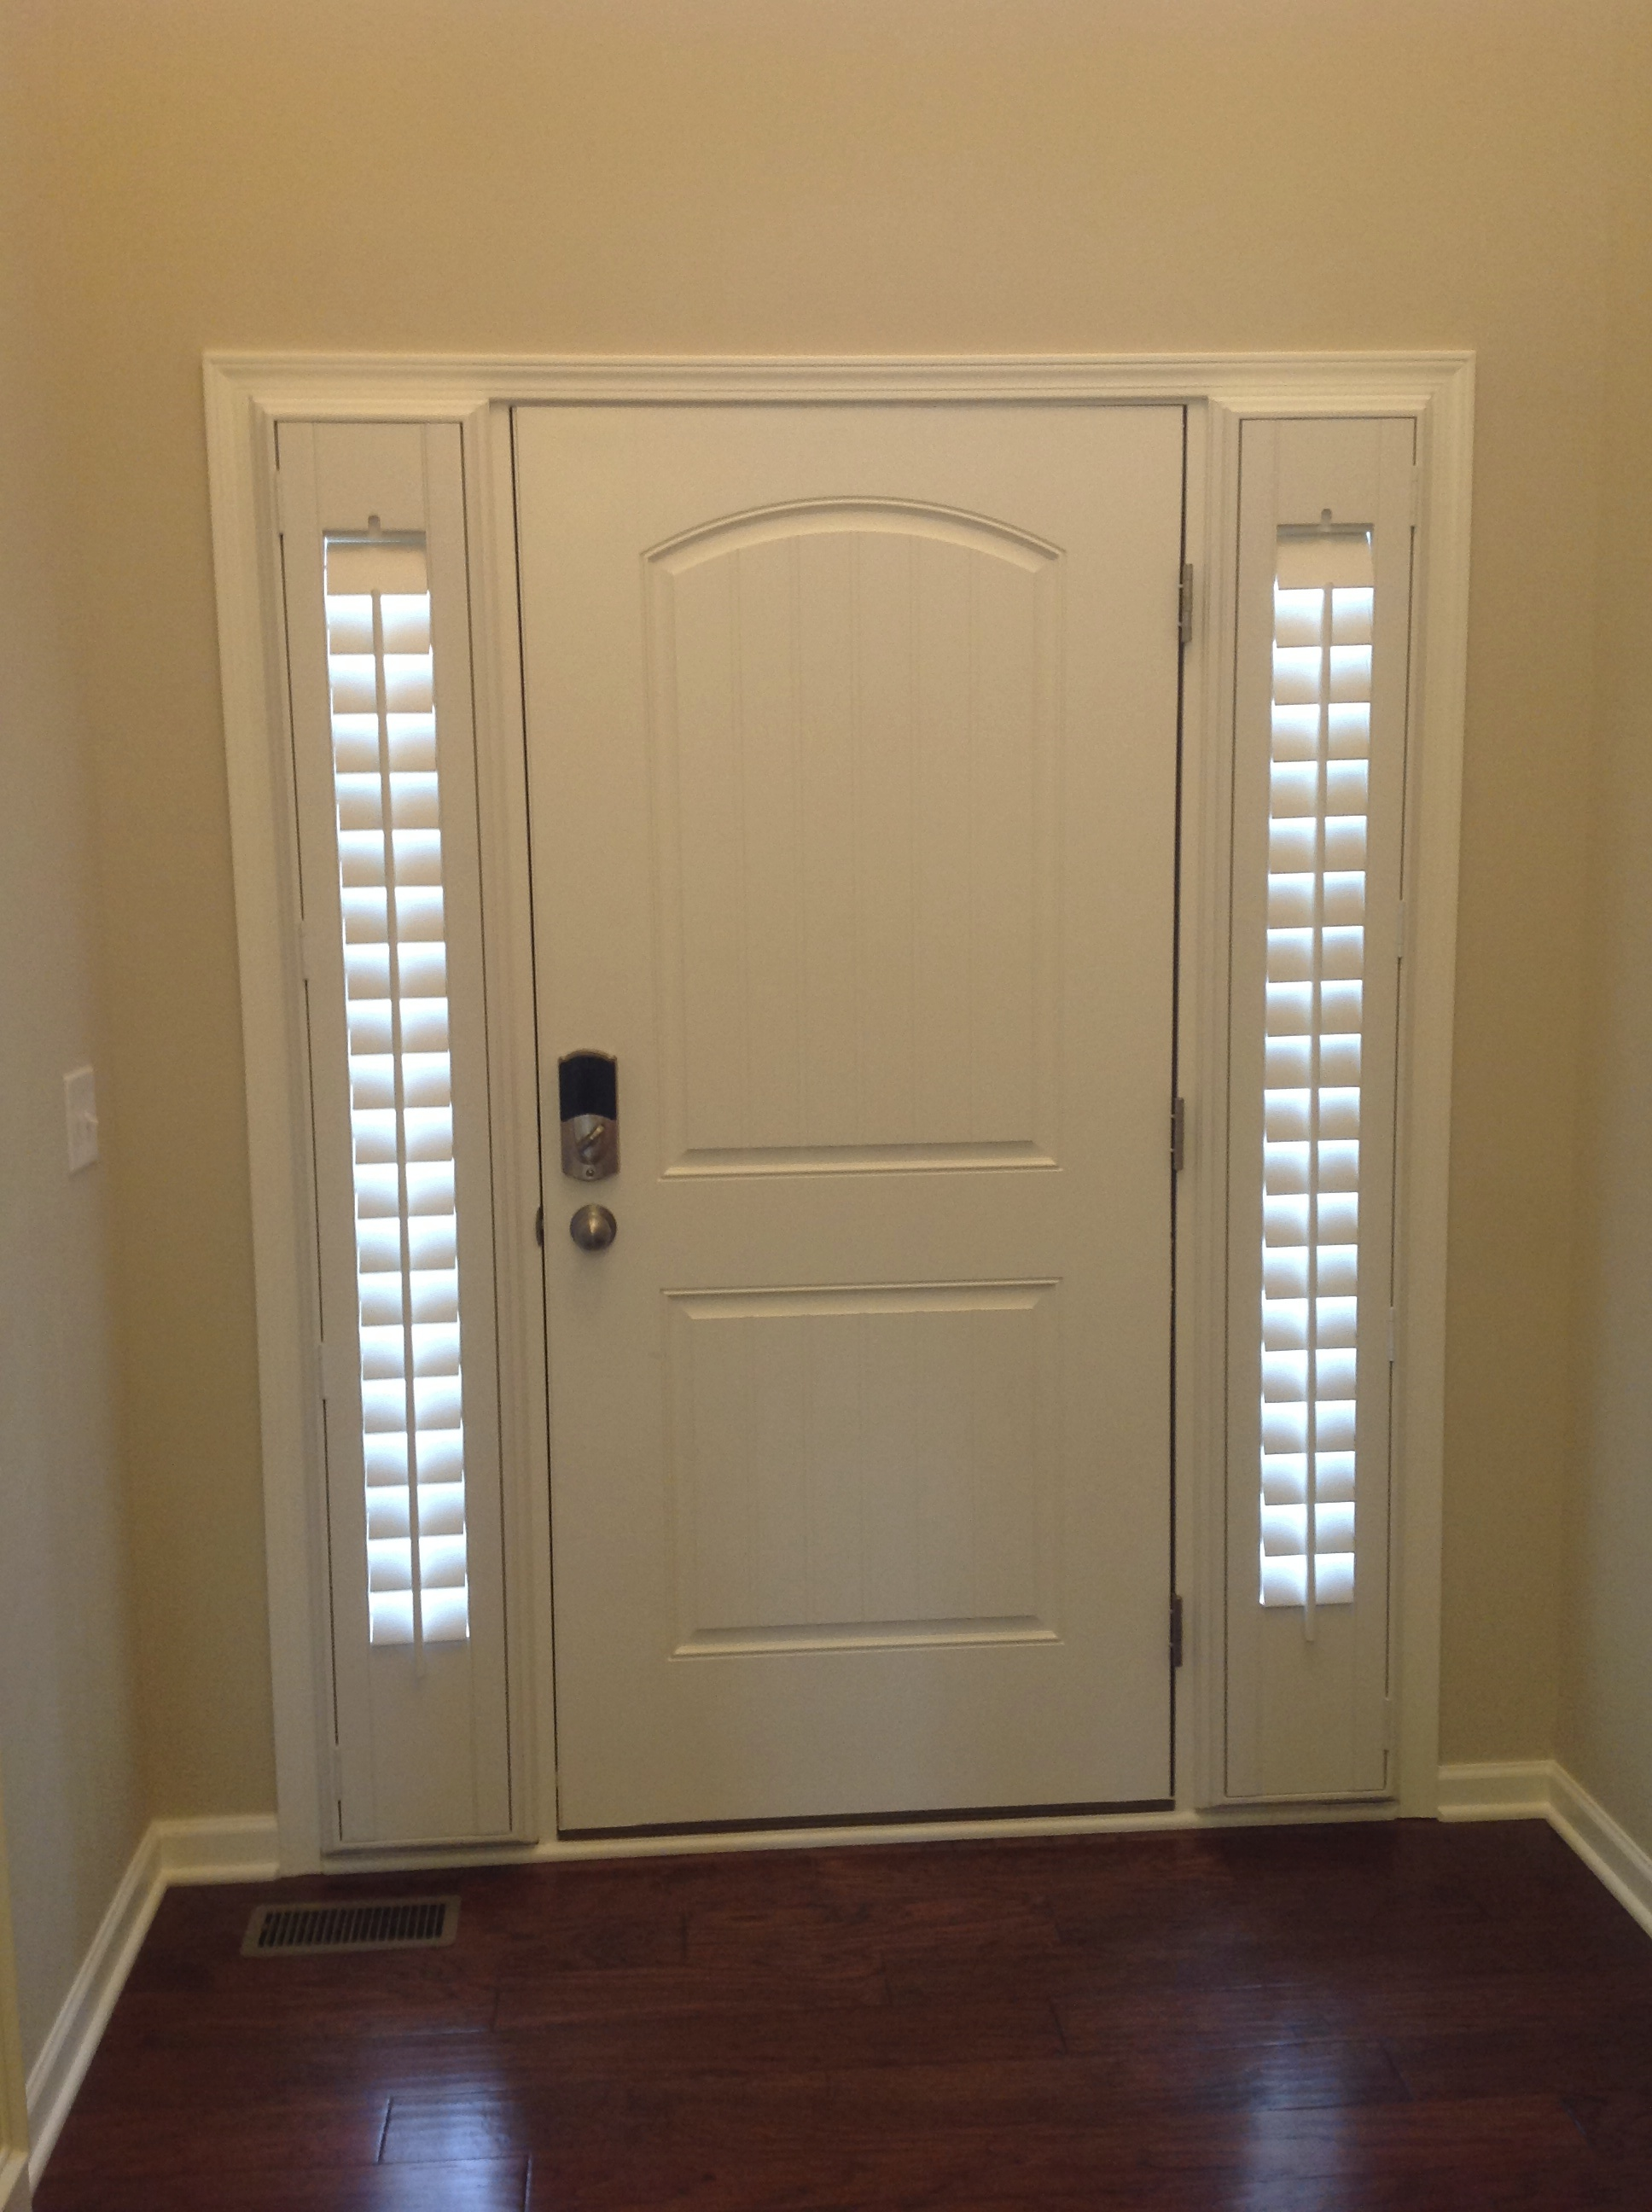 Blinds vertical blinds wood blinds roman shades drapery draperies - Entry Door Sidelight Window Shutters Cleveland Shutters